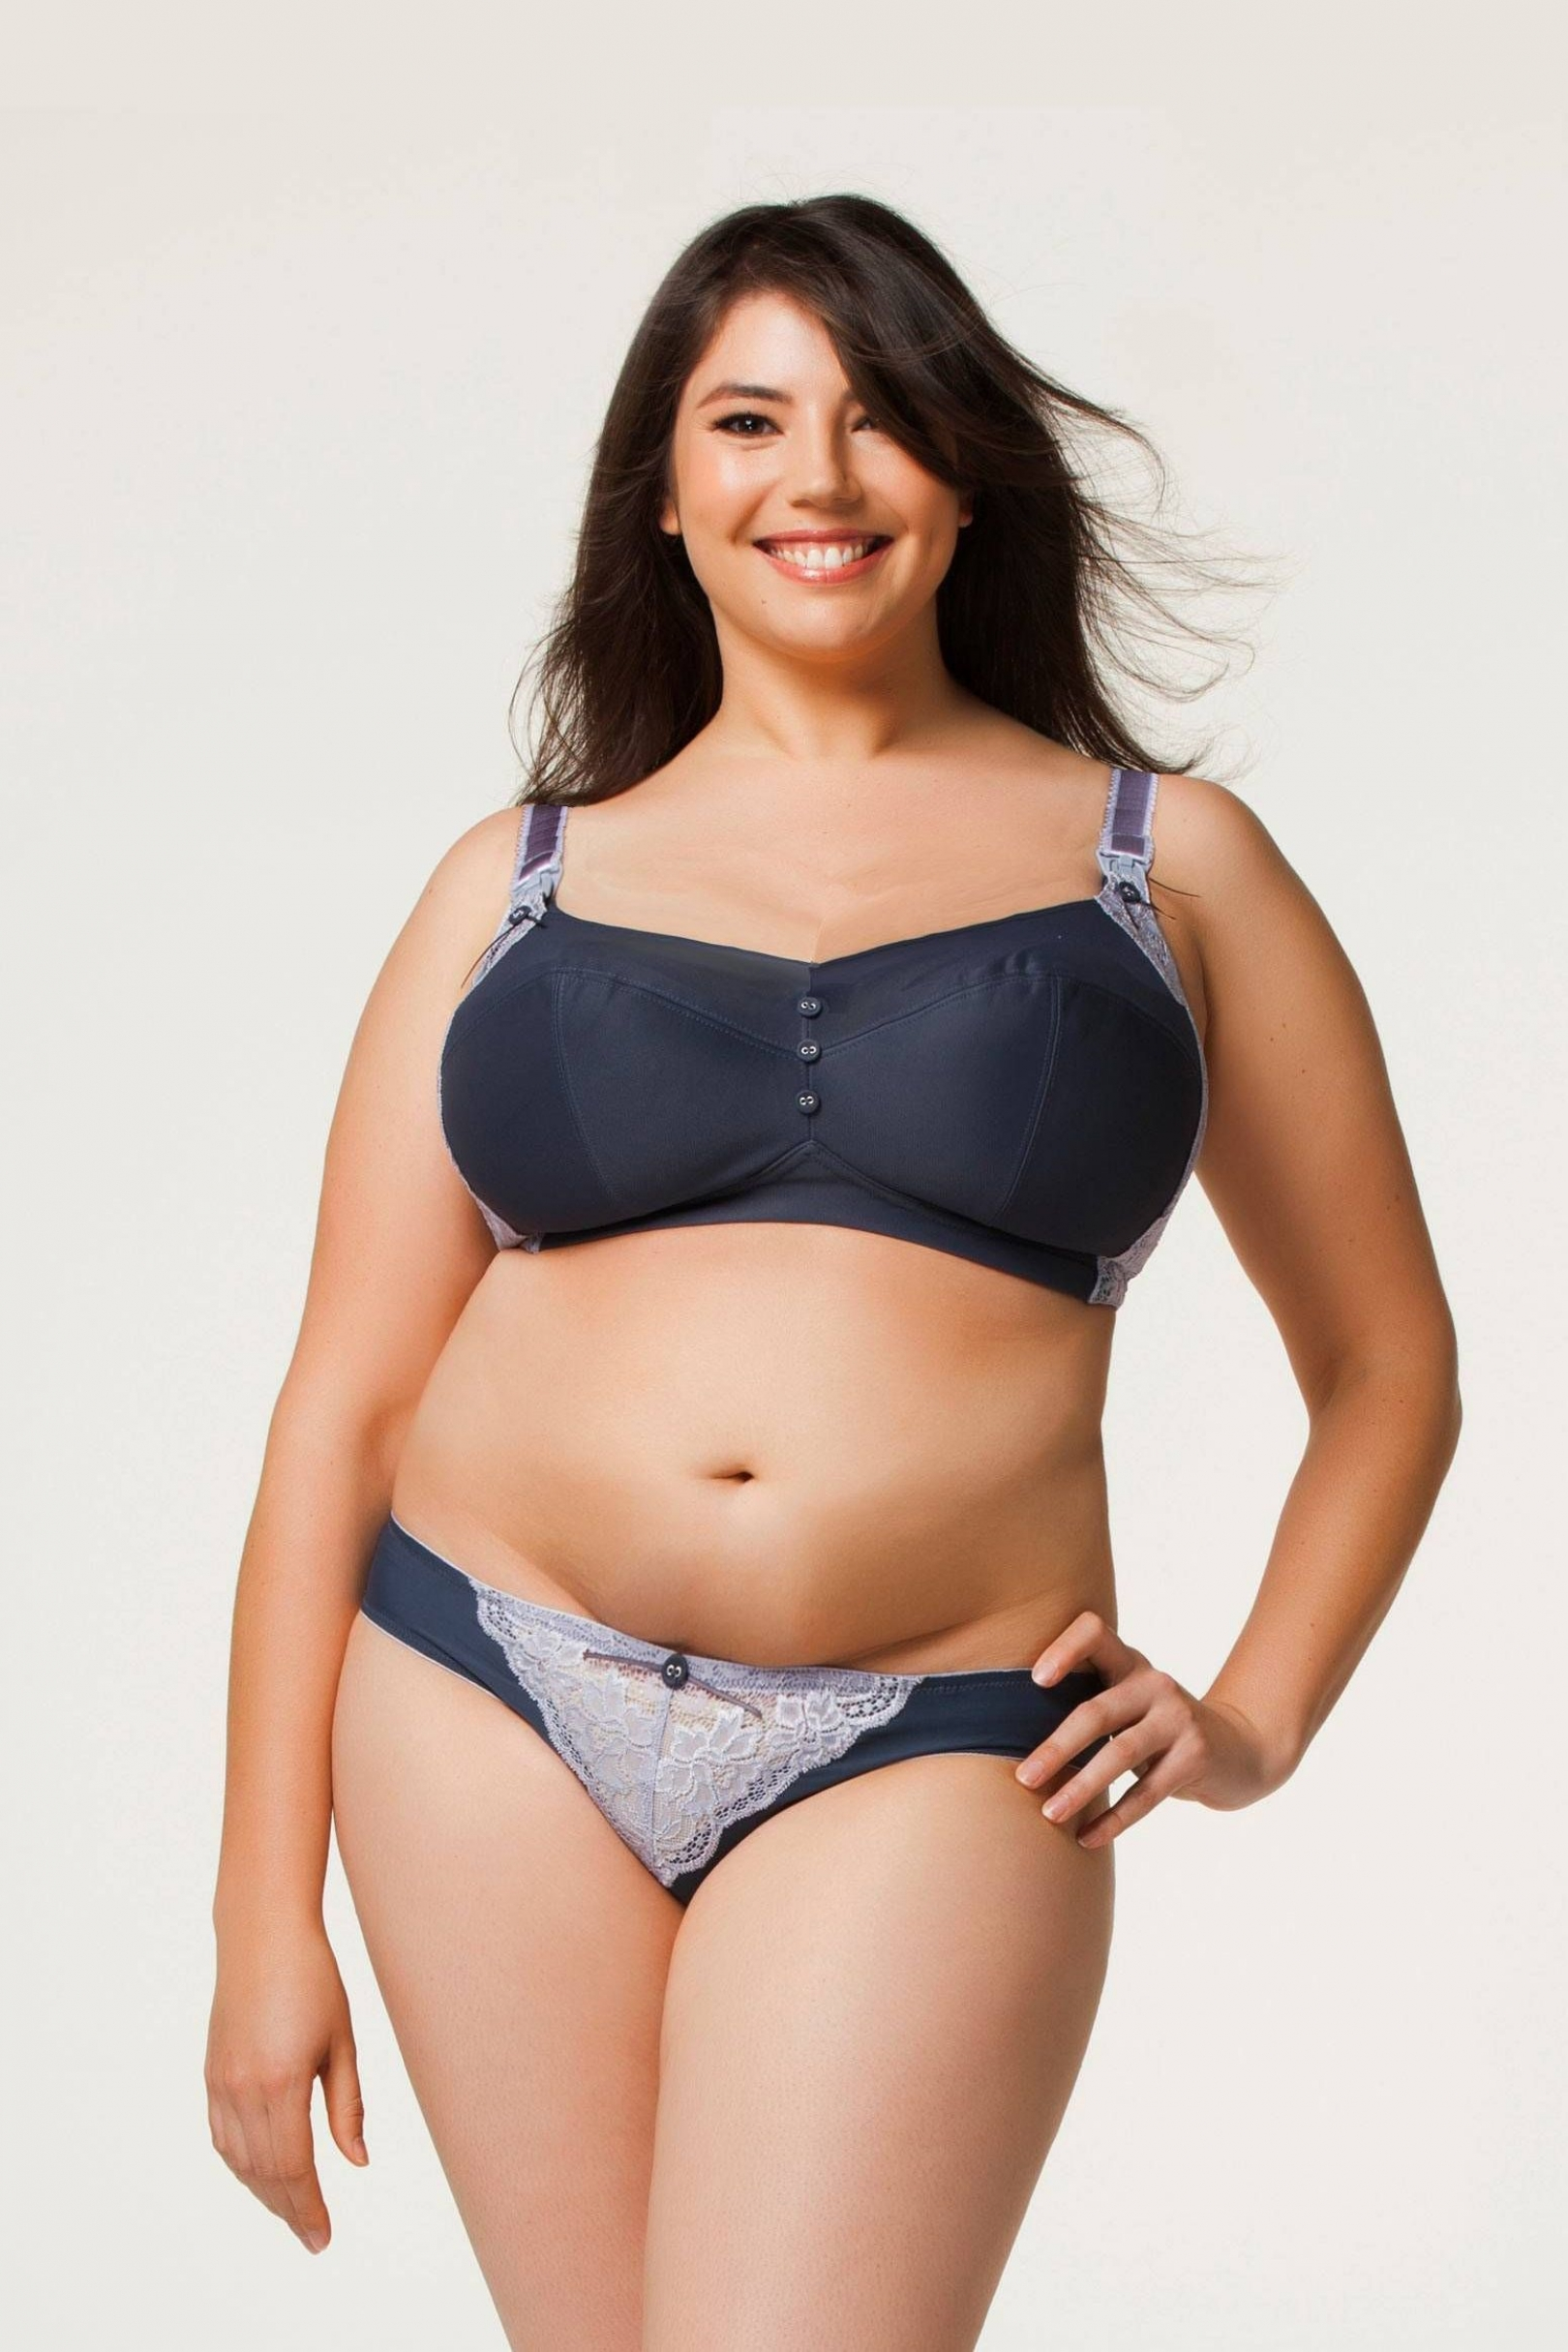 Plus Size Bra: The Perfect Support To Youth Breasts